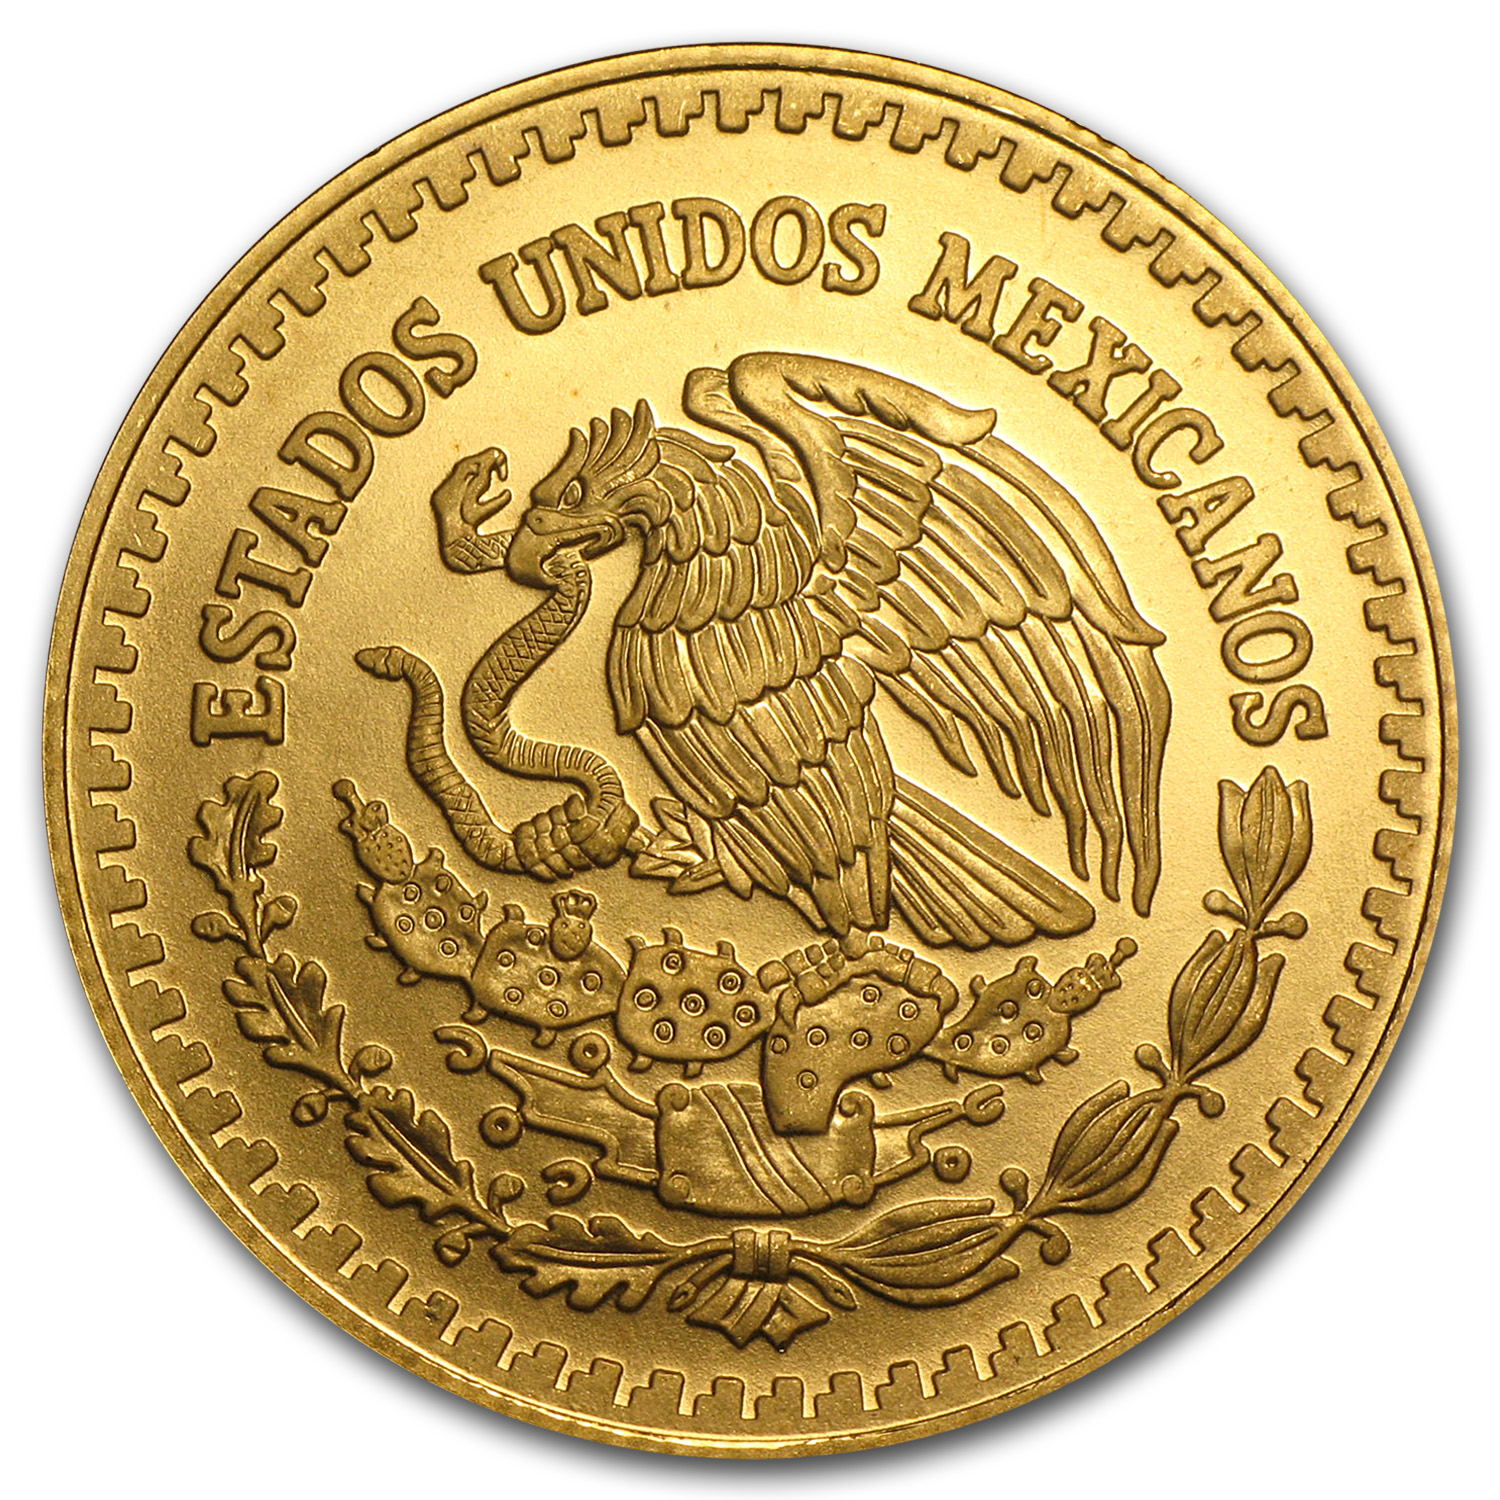 2005 1/2 oz Gold Mexican Libertad (Brilliant Uncirculated)